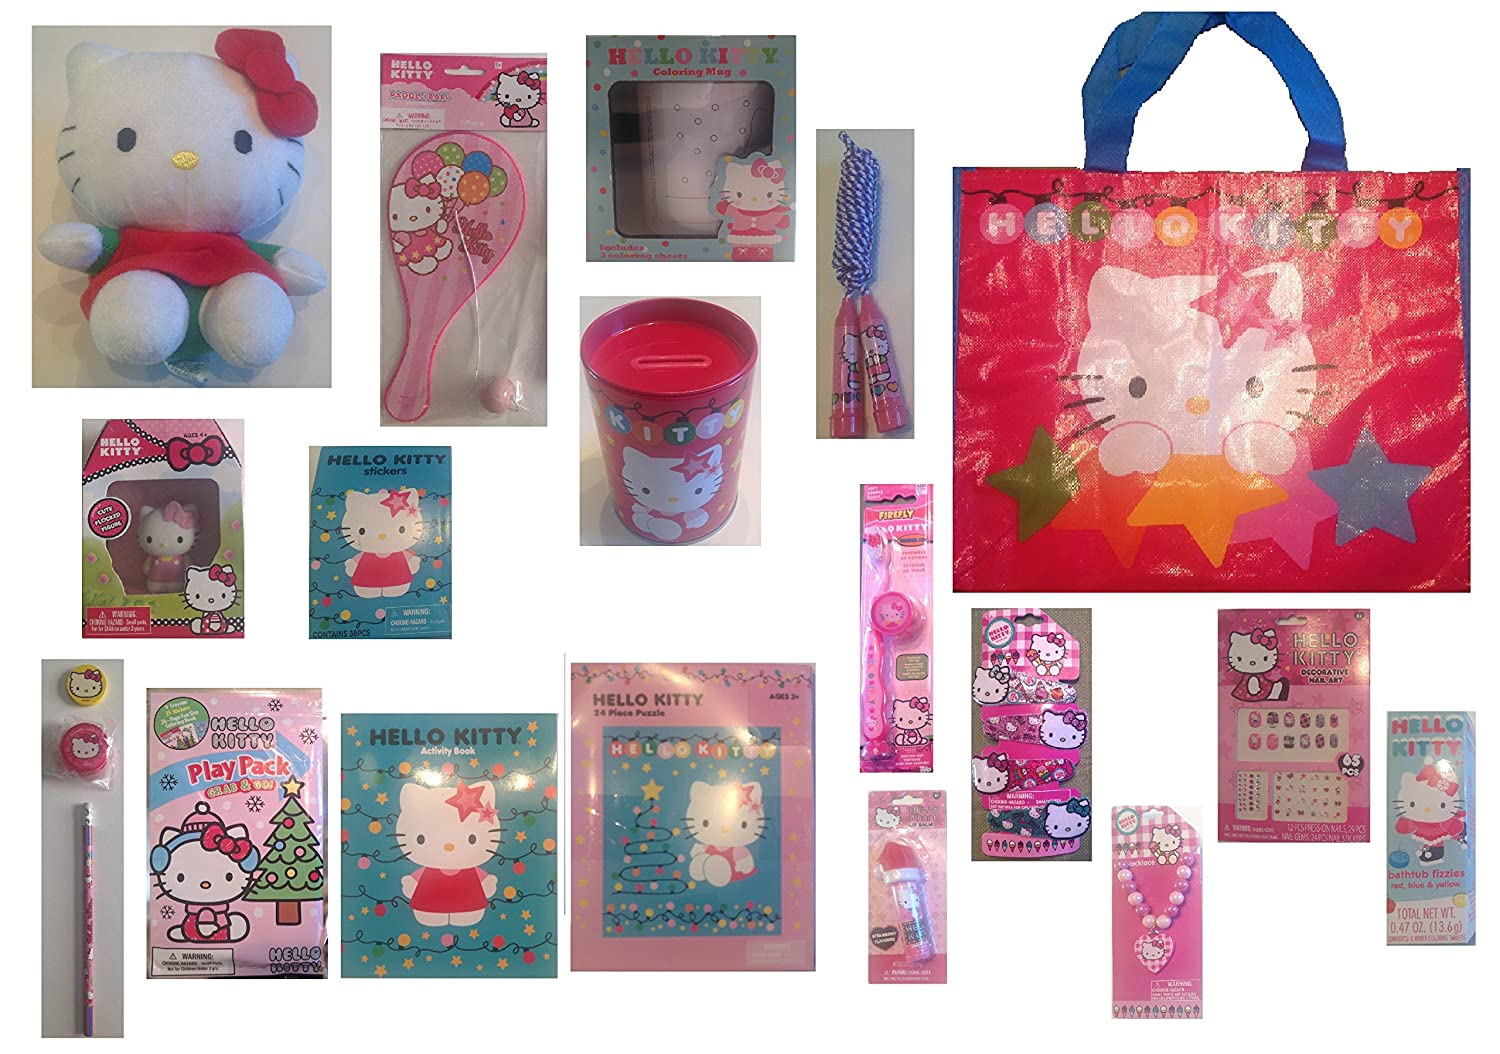 Hello Kitty 3D Crayons Great Stocking Filler 4 Shaped Kitty Crayons